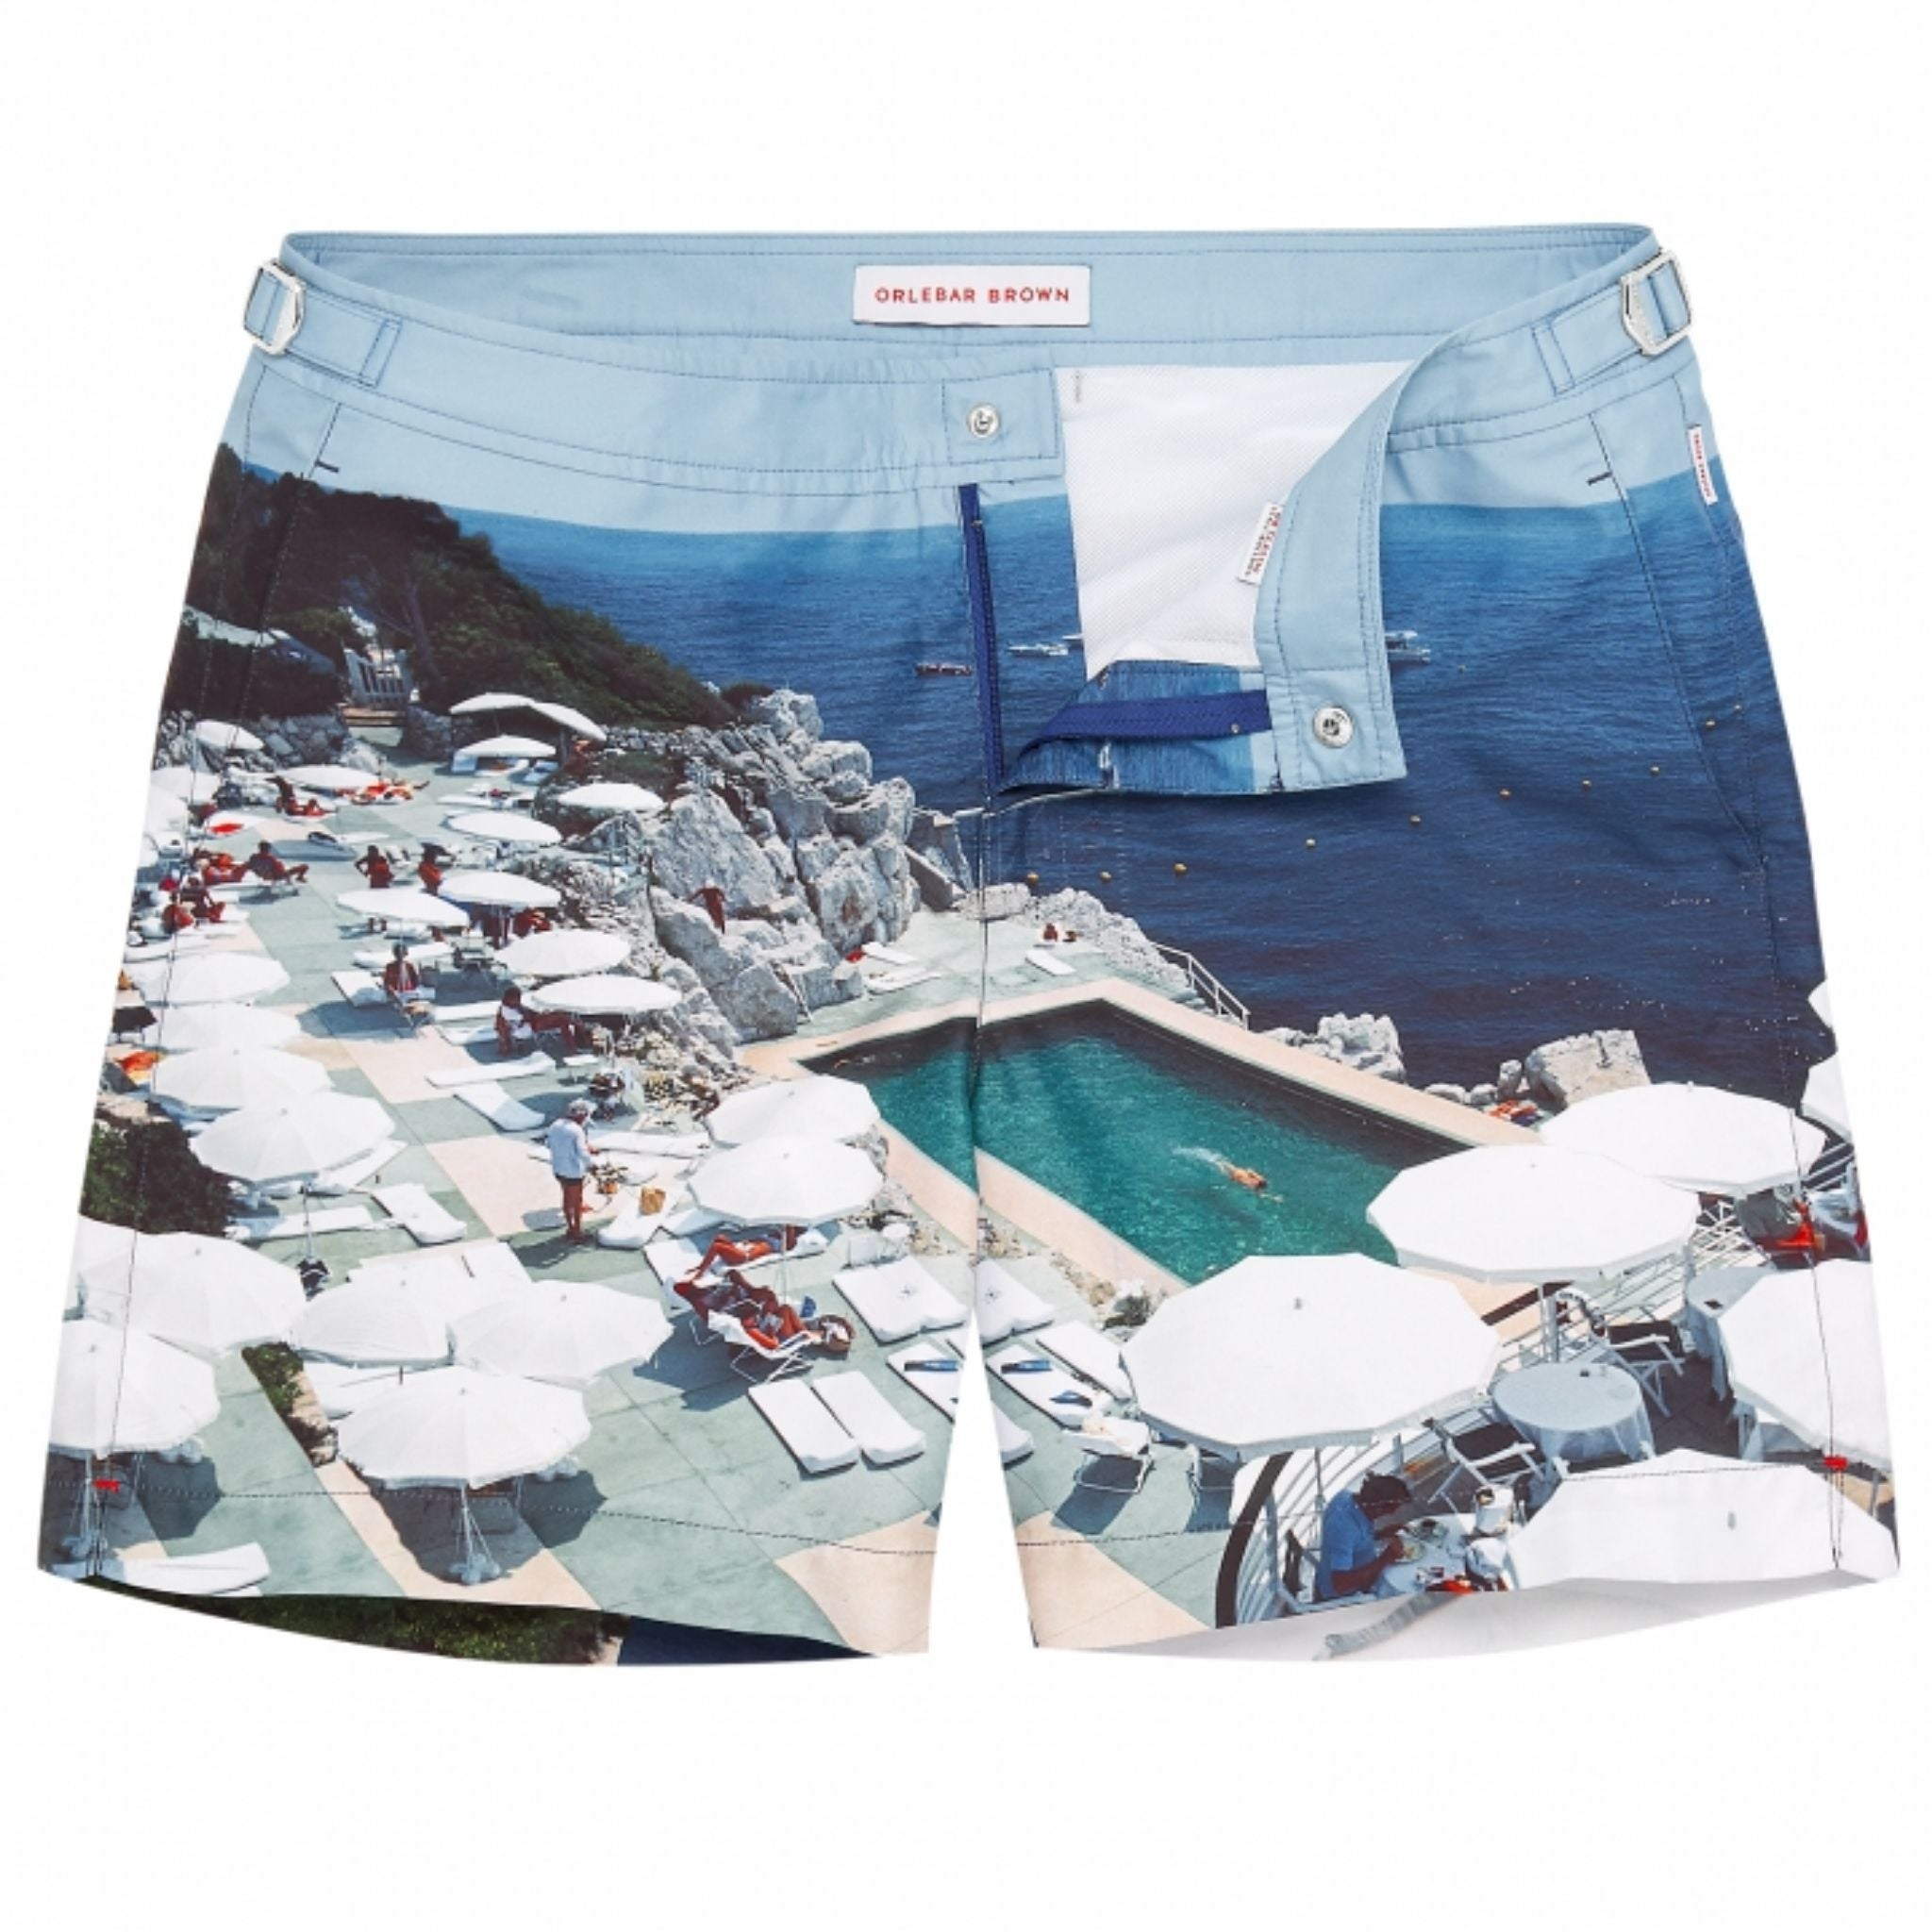 Shorts for summer - Orlebar Brown swim trunks